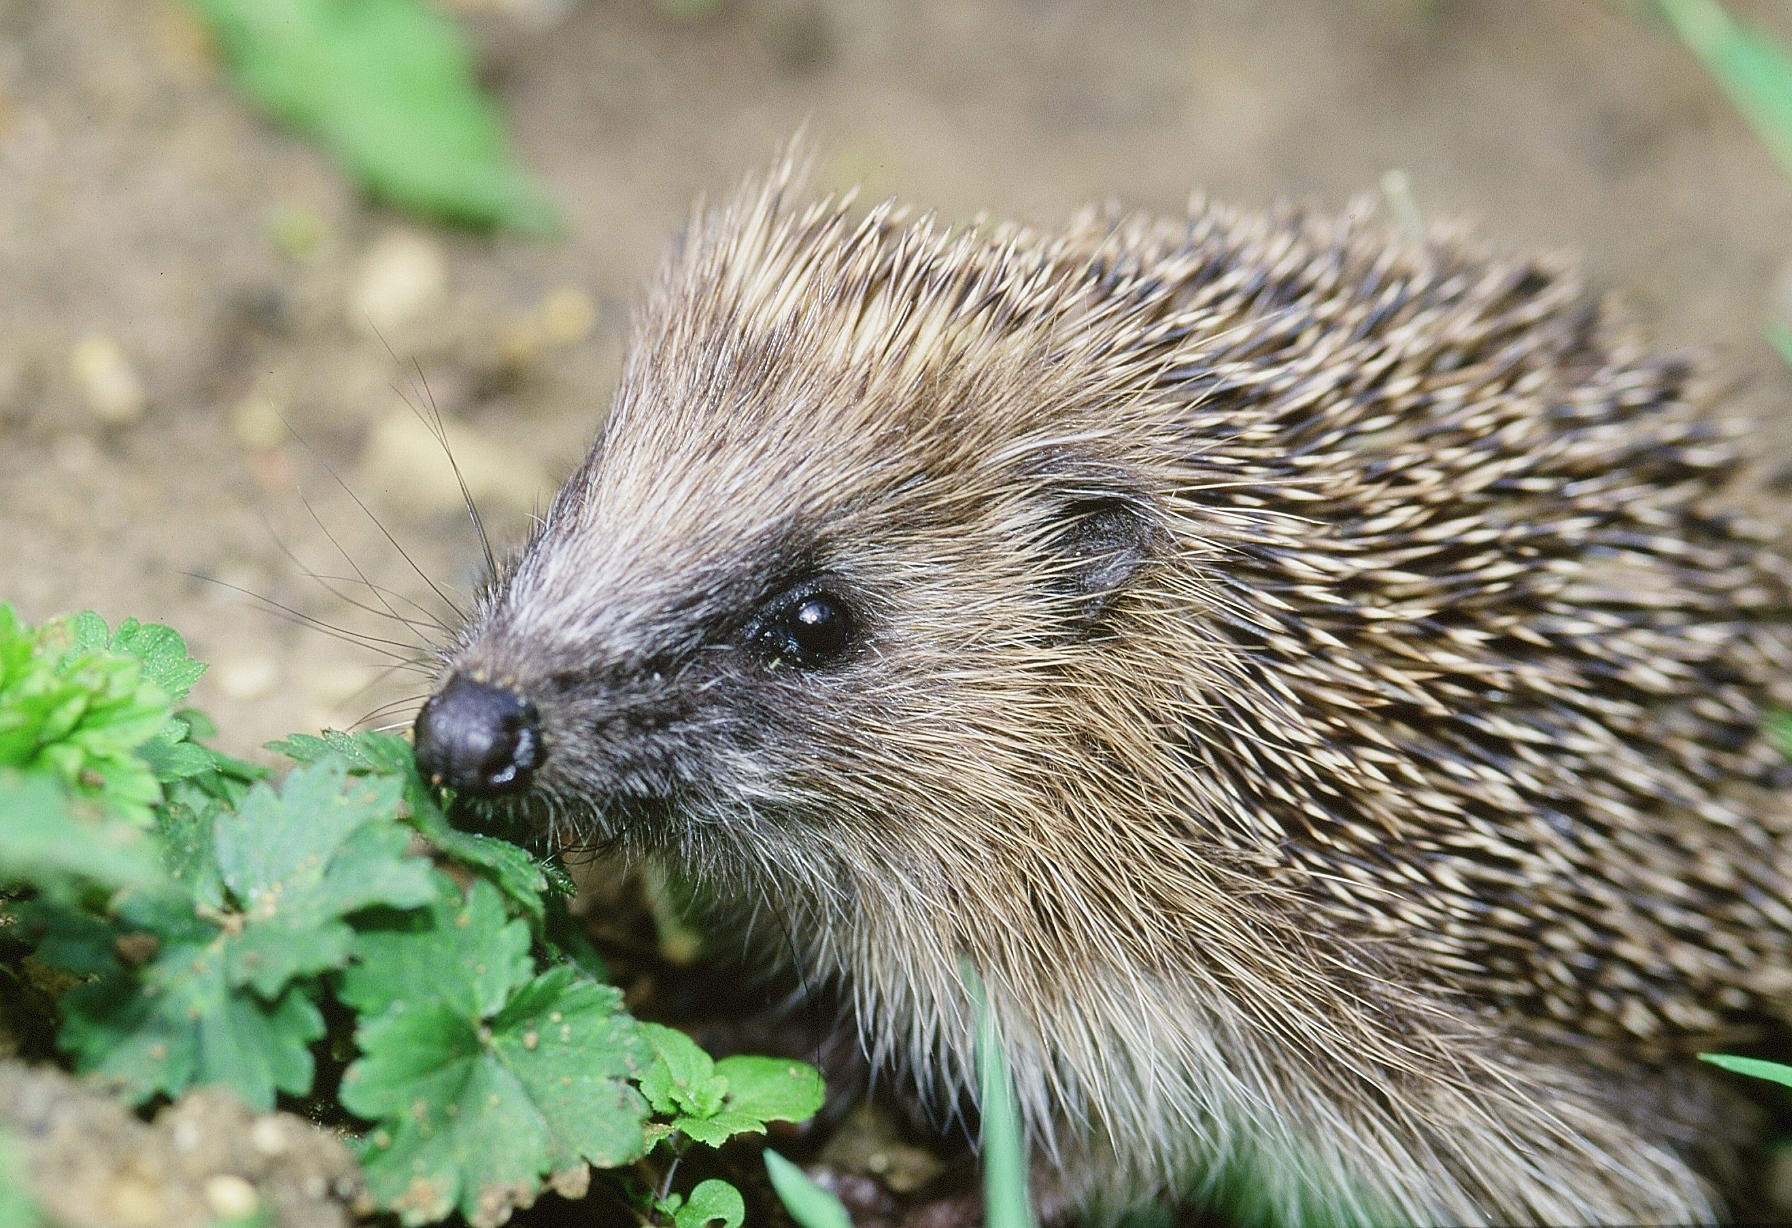 Hedgehog numbers in the countryside have halved since the turn of the century, a new report warns (Stephen Oliver/PTES/BHPS/PA Wire)